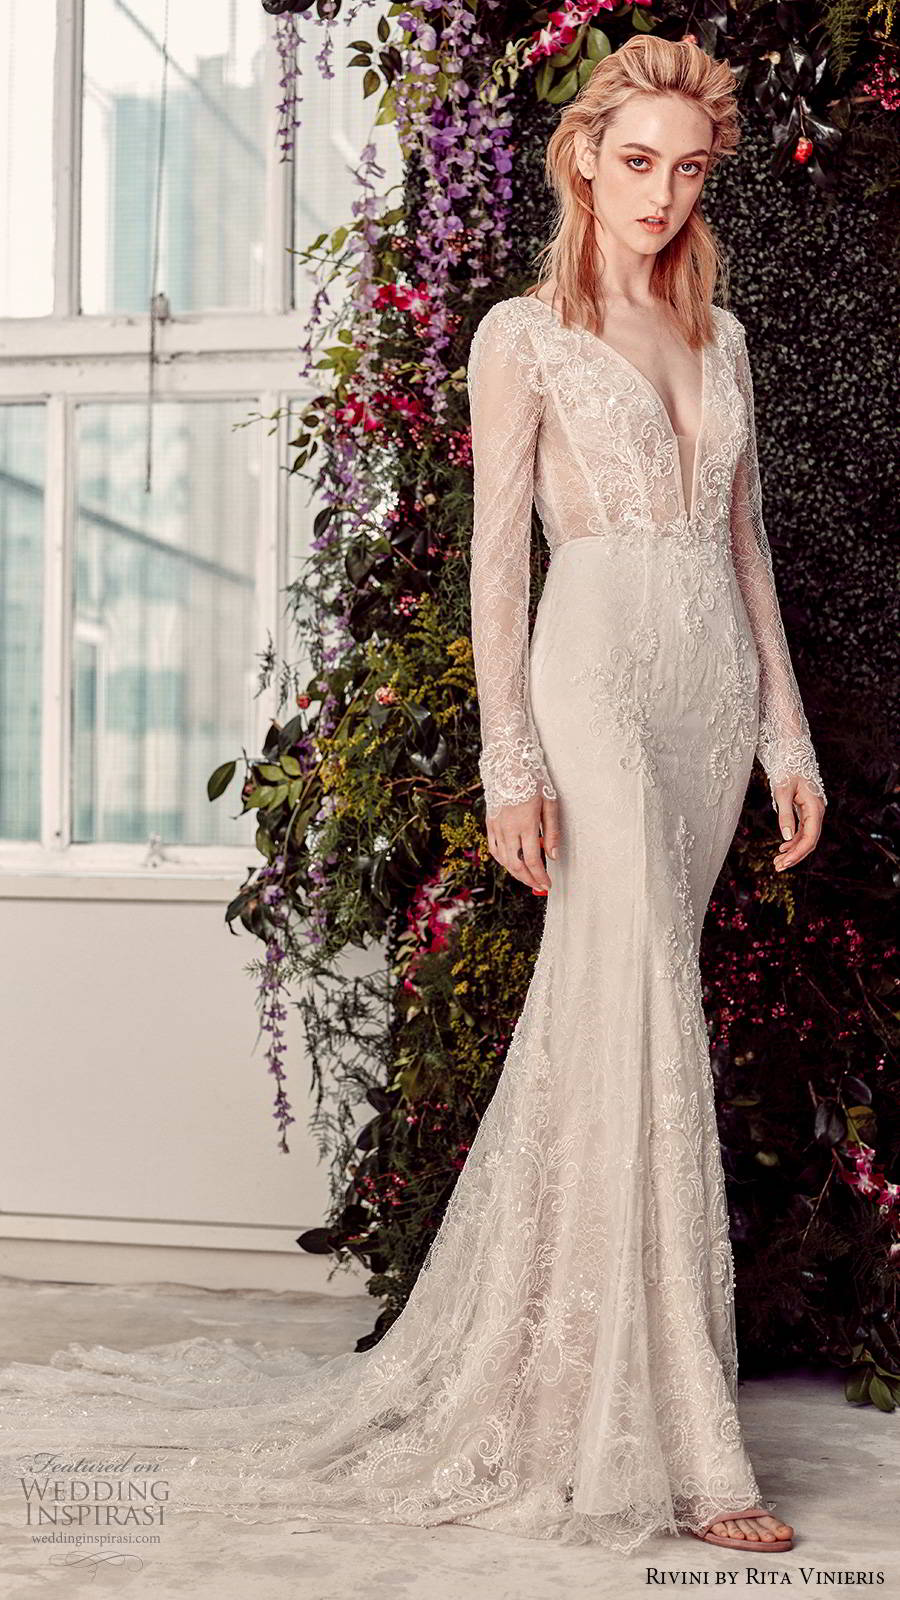 rivini by rita vinieris spring 2020 bridal illusion long sleeves plunging v neckline fully embellished lace elegant sheath fit flare wedding dress (4) mv